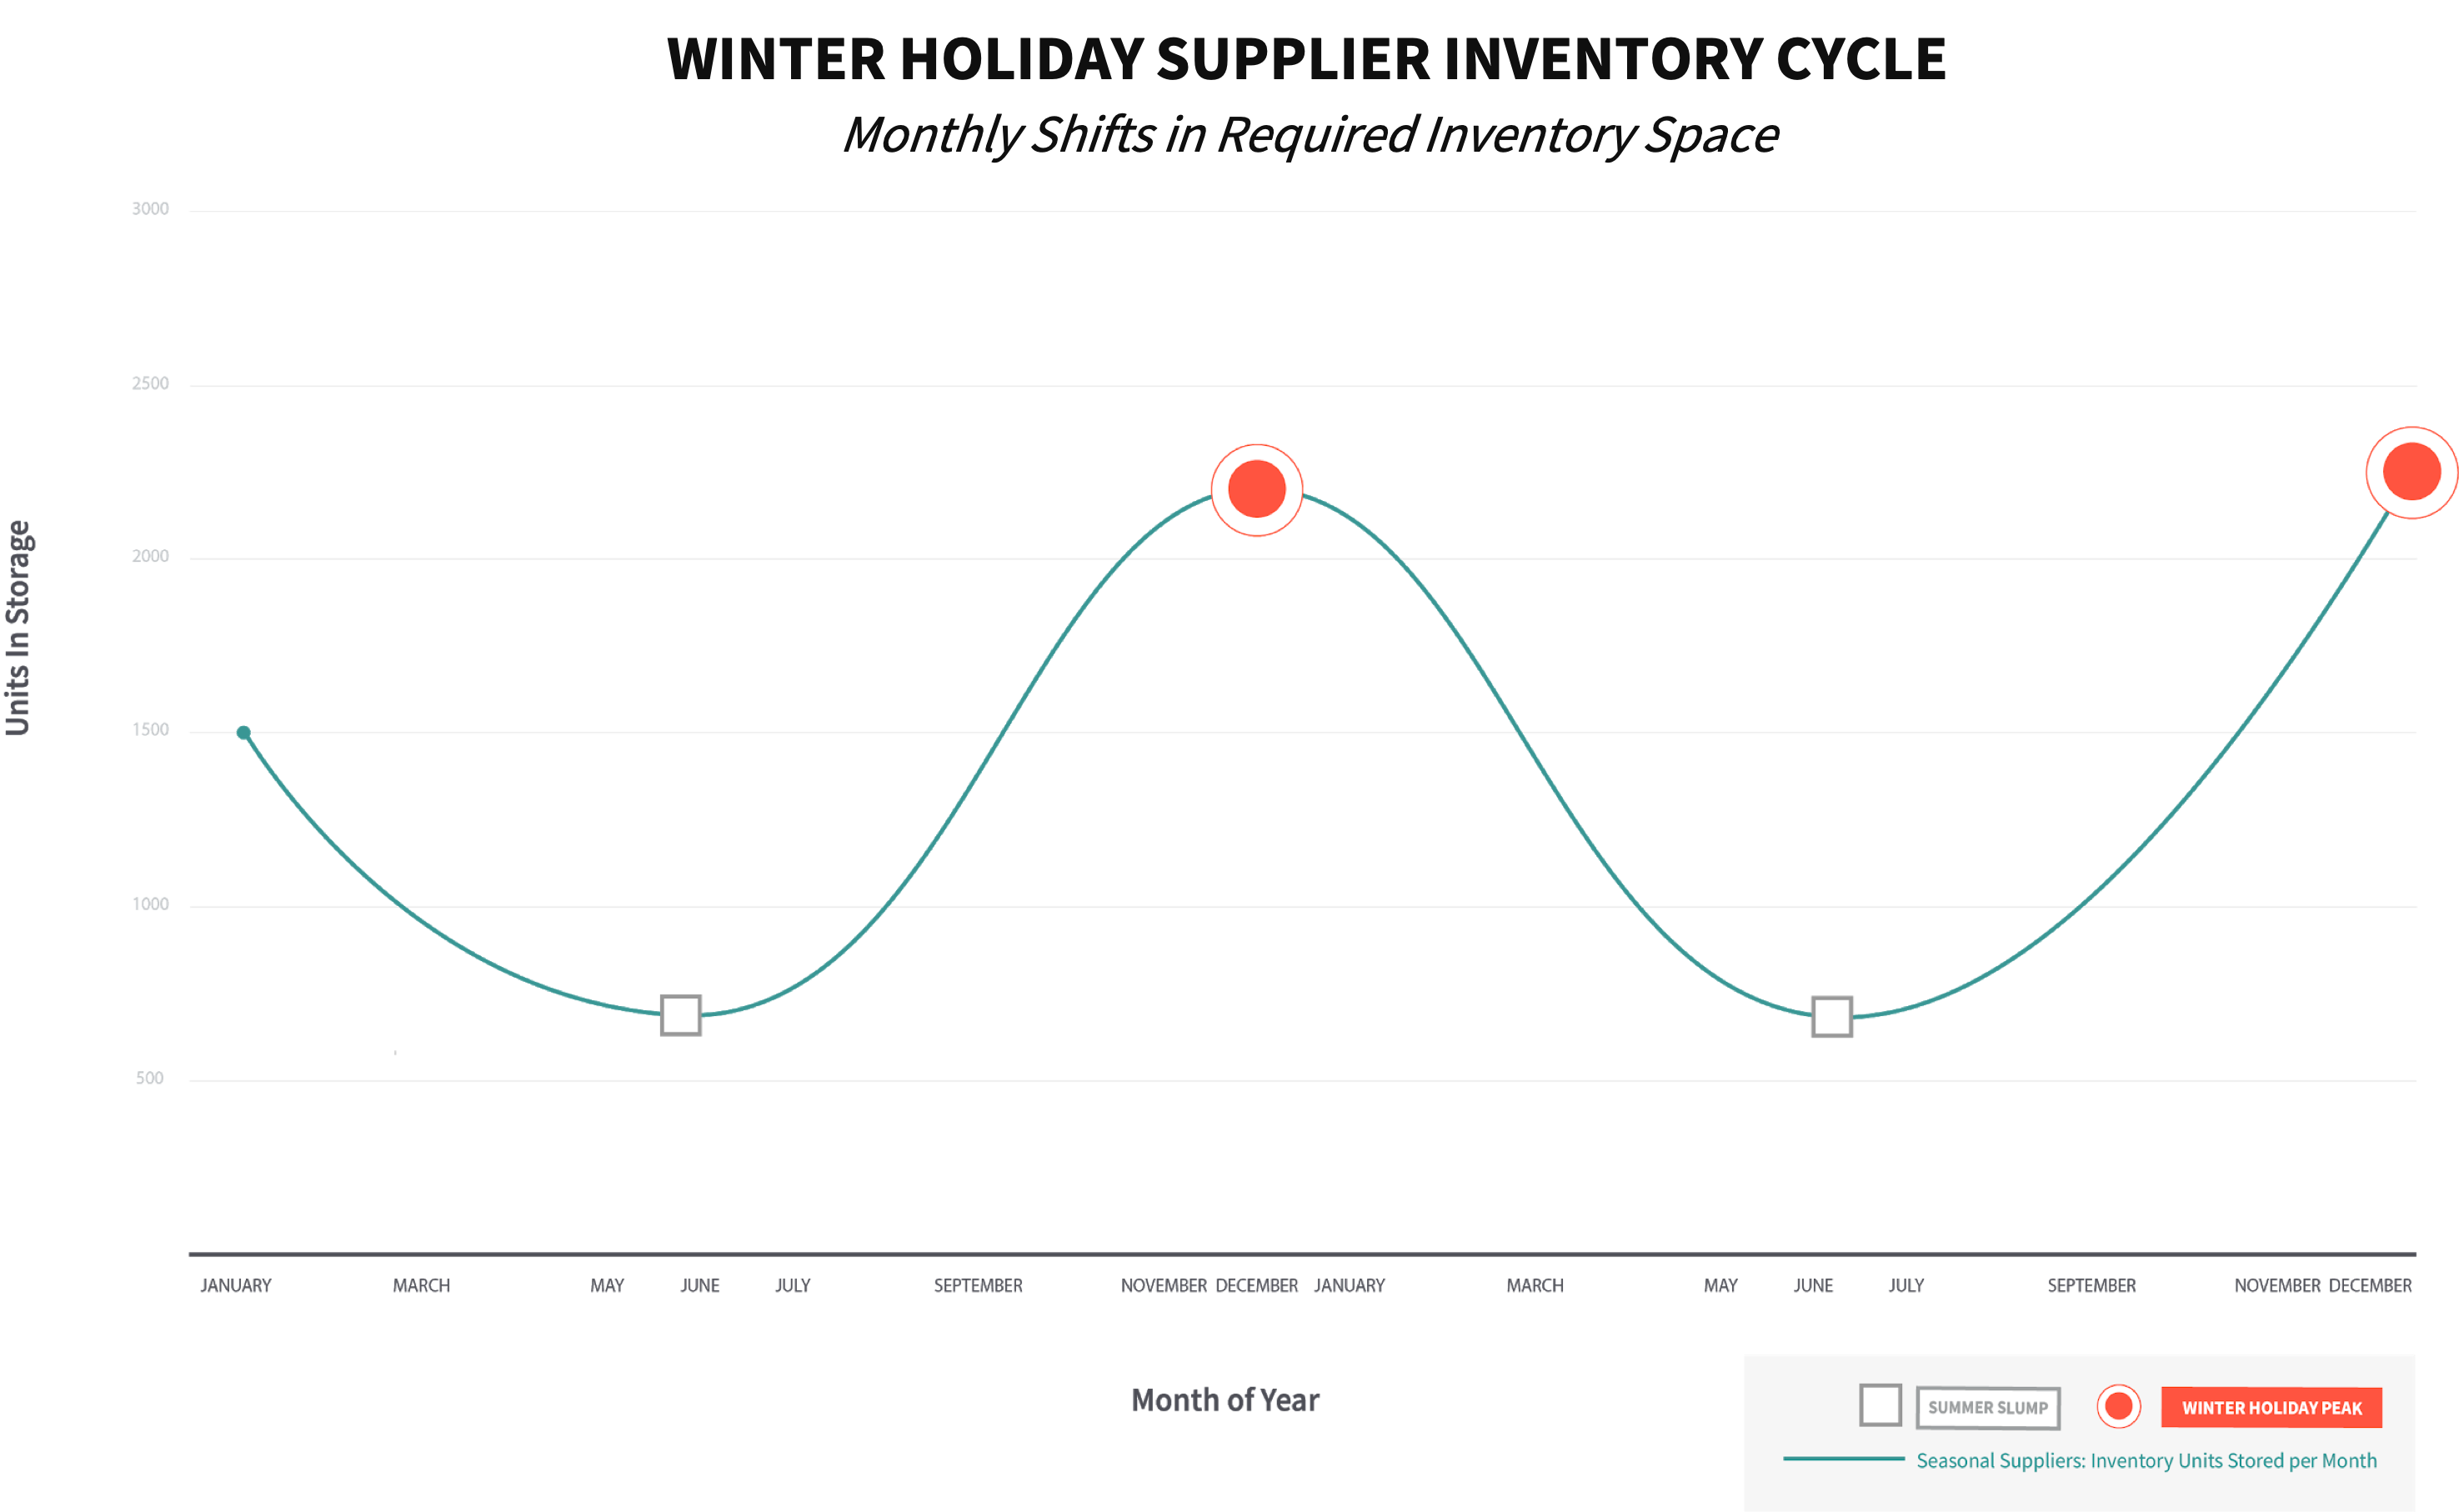 How seasonal inventory can shift by month